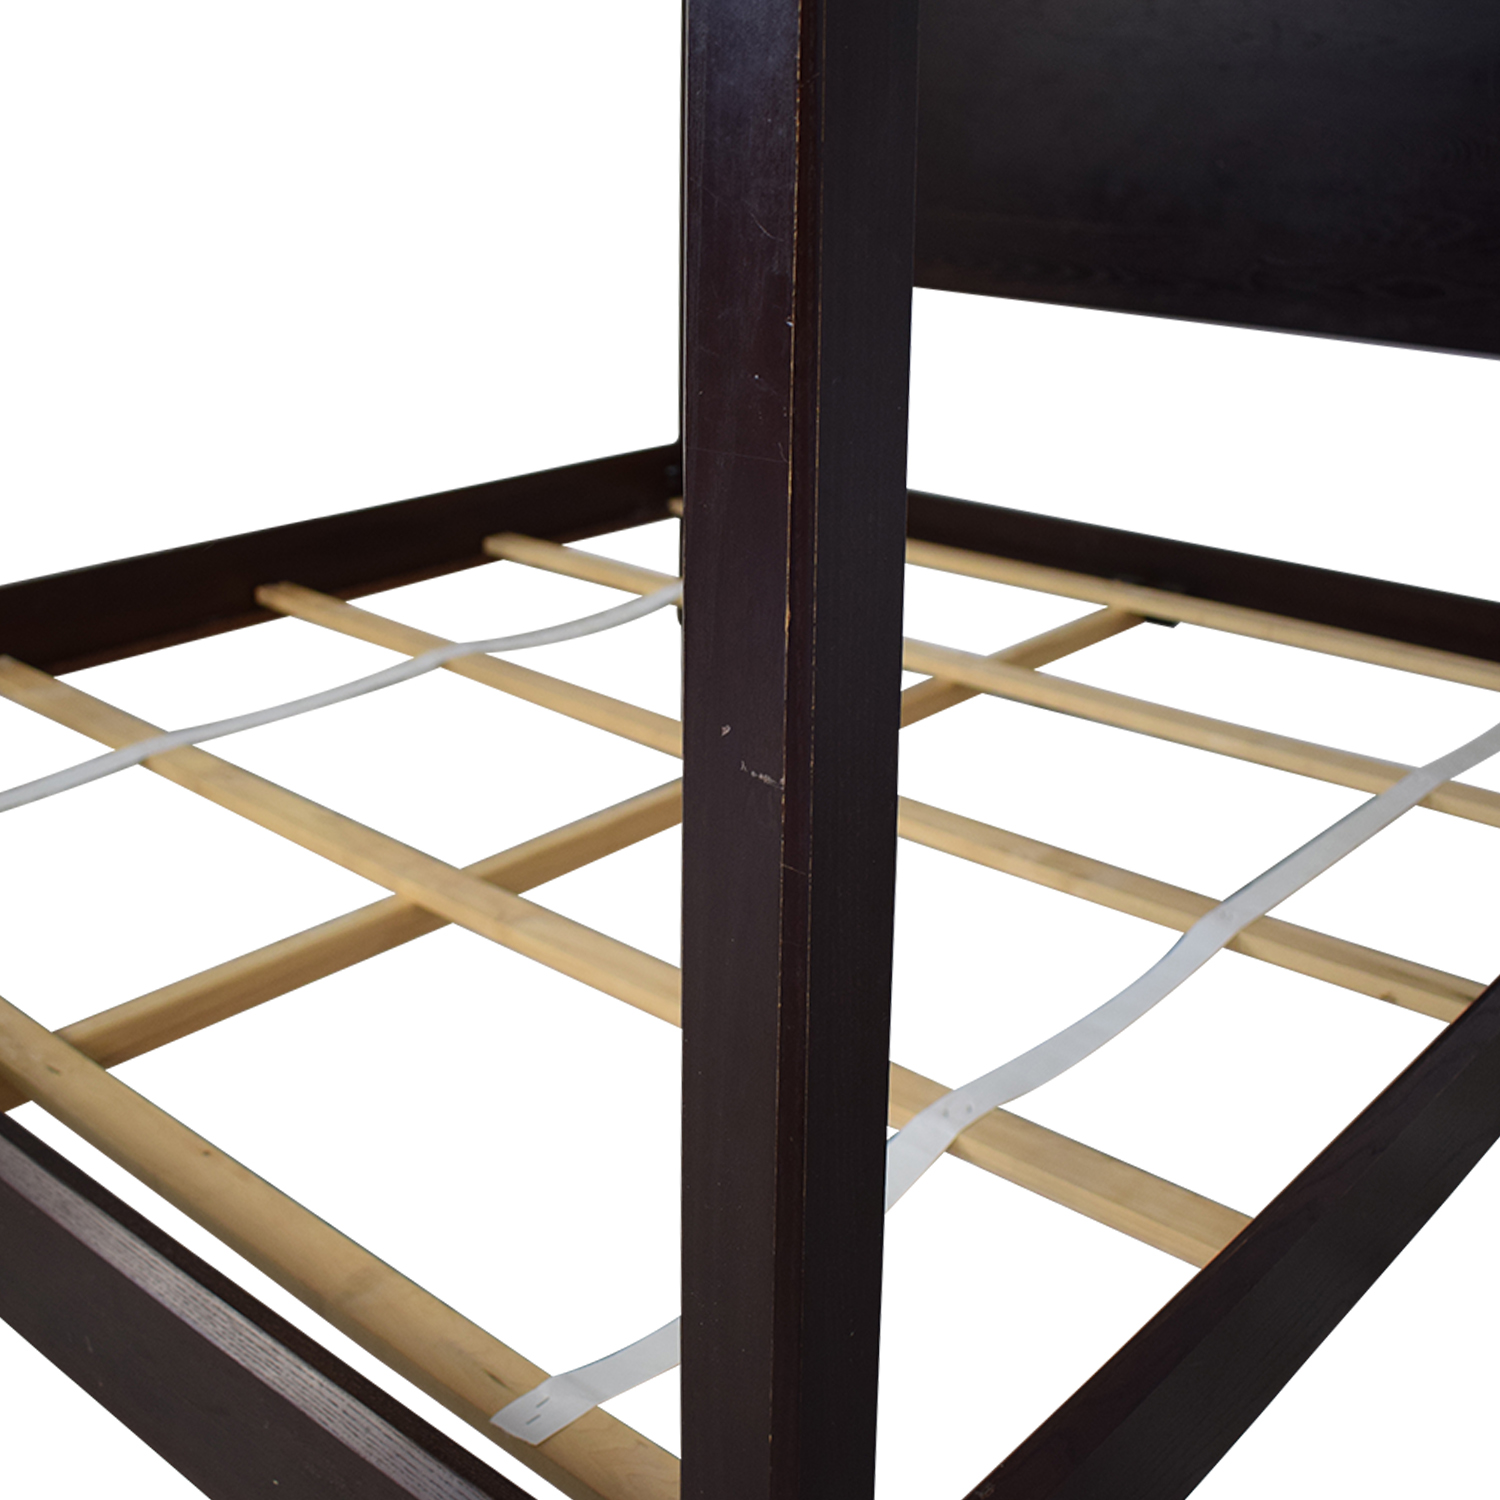 Bloomingdale's Bloomingdale's Canopy King Size Bed with Headboard dimensions